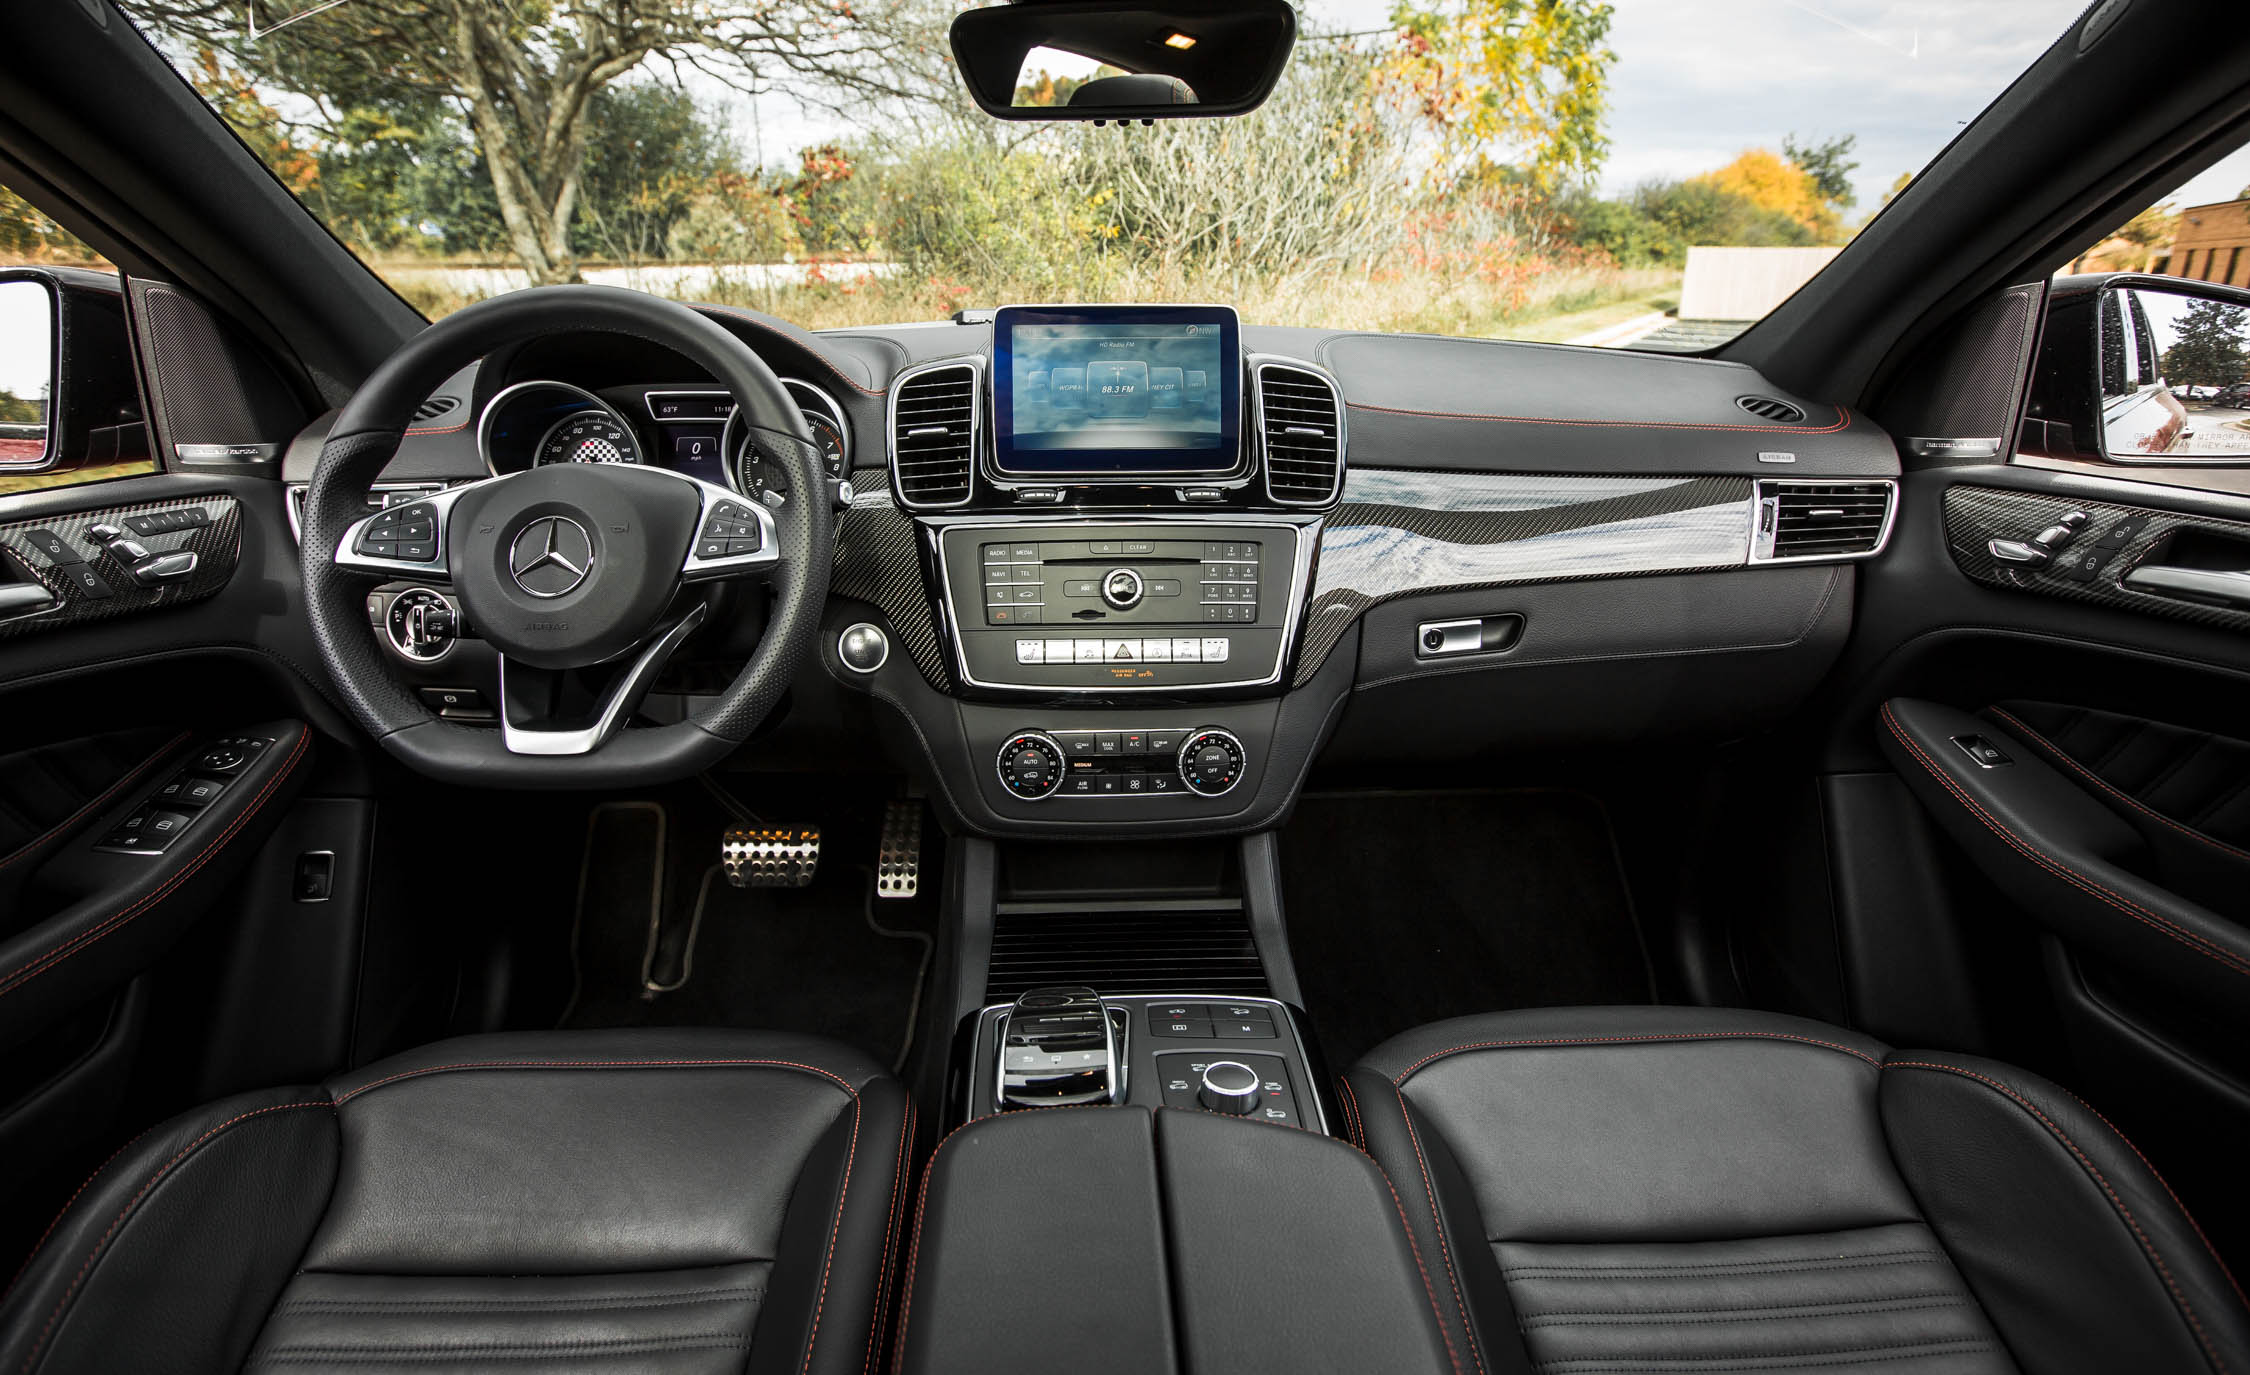 2016 Mercedes-Benz GLE450 AMG Coupe Interior Dashboard